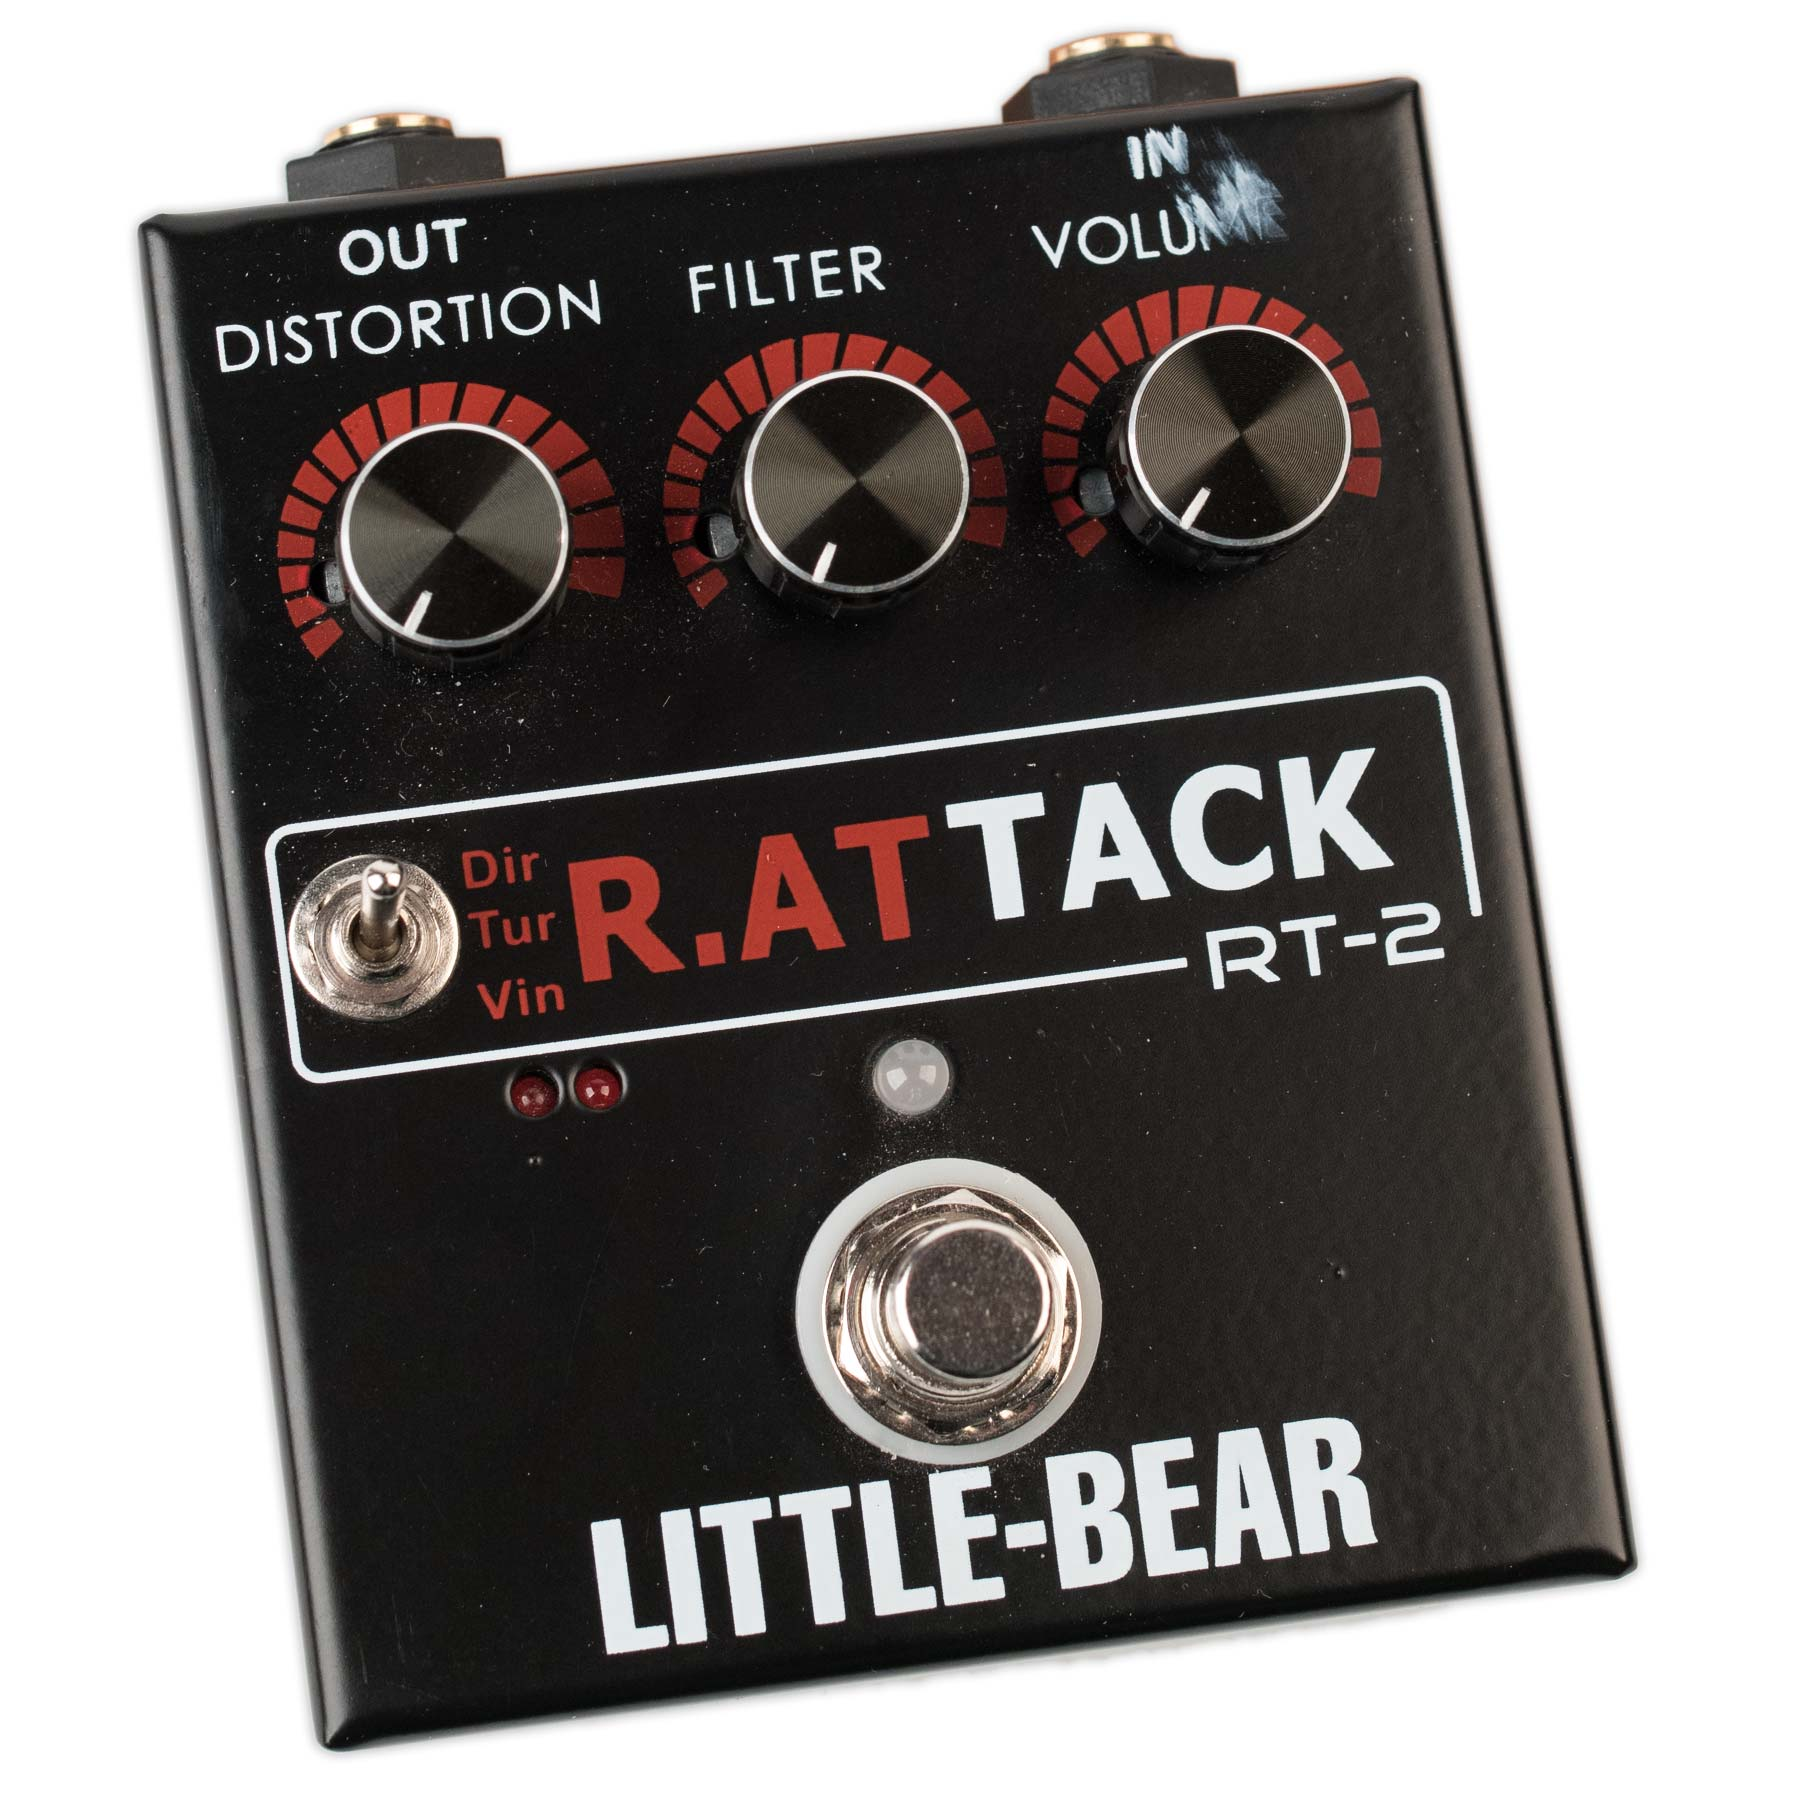 USED LITTLE BEAR RA.TTACK